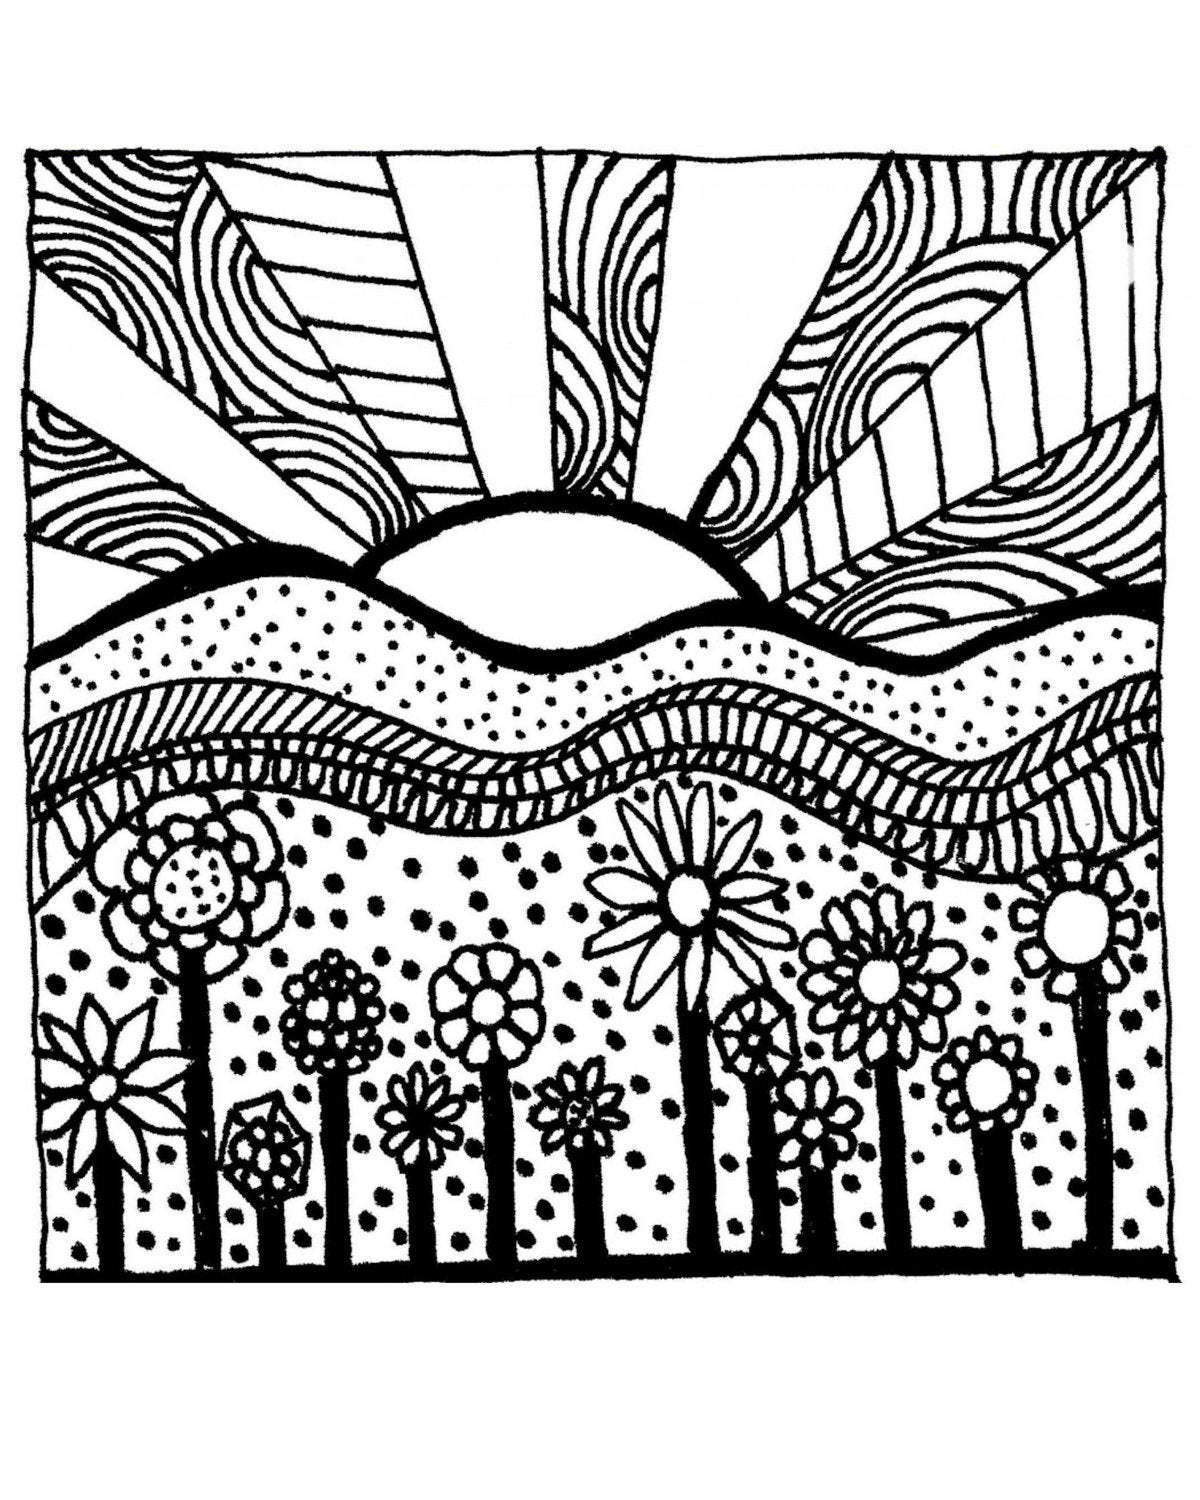 electronic coloring book for adults adult colouring pagecirlces and swirls original digital adults coloring electronic for book